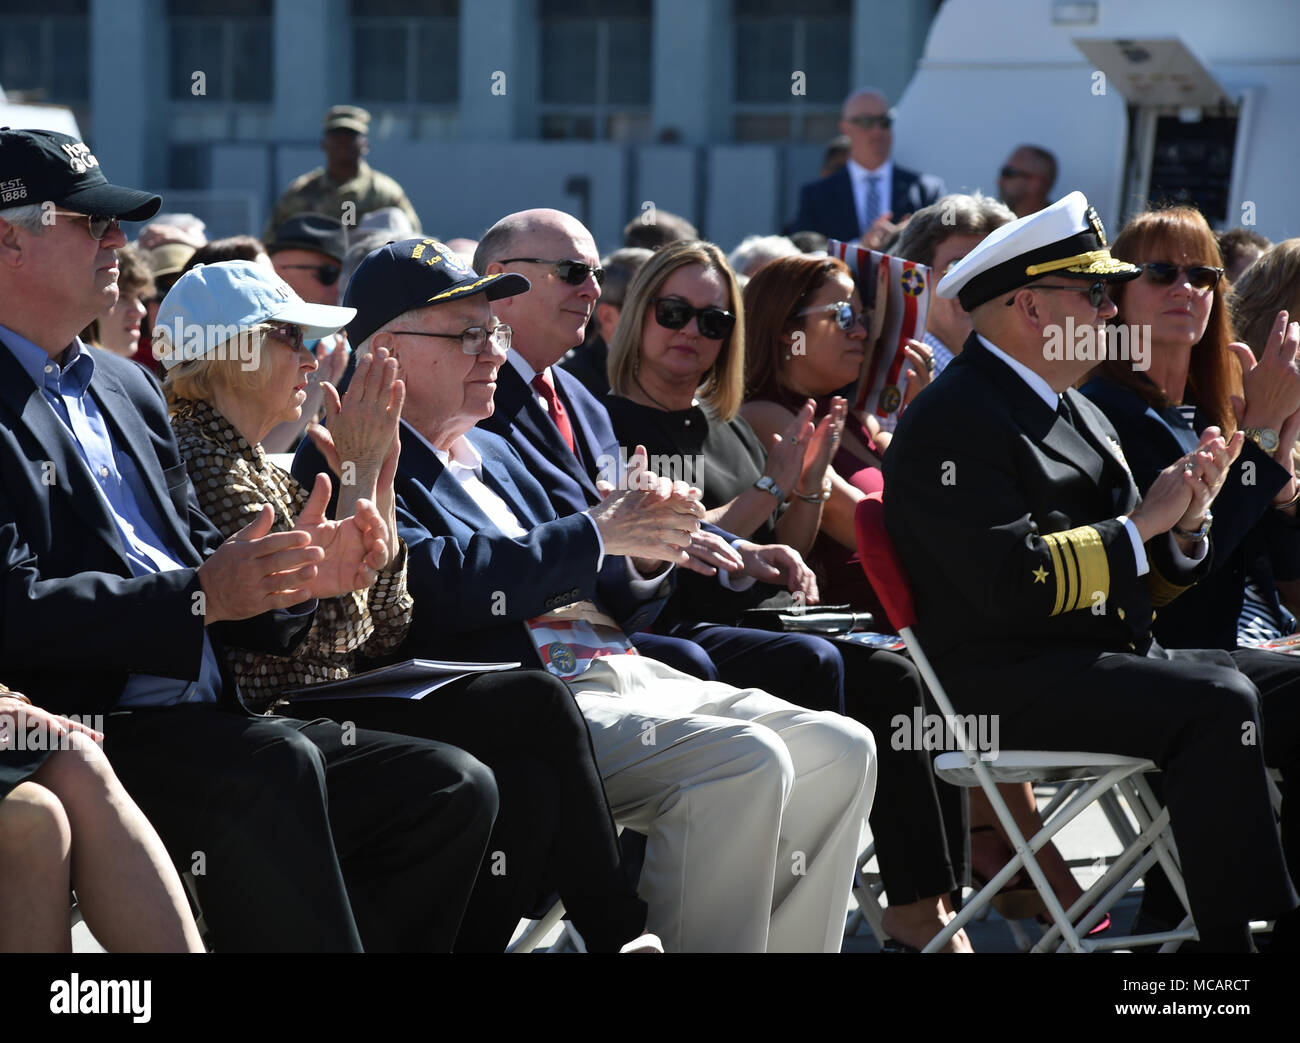 180203-N-RG360-0092 SAN DIEGO (Feb. 3, 2018) Warren Buffett, center, and his wife Astrid Menks, left of him, clap during the commissioning ceremony of the littoral combat ship USS Omaha (LCS 12) at Broadway Pier in downtown San Diego. Omaha is the 11th littoral combat ship to enter the fleet and the sixth of the Independence variant. The ship is named for the city of Omaha, Nebraska and is assigned to Naval Surface Forces, U.S. Pacific Fleet. (U.S. Navy photo by Mass Communication Specialist 1st Class Melissa K. Russell/Released) - Stock Image